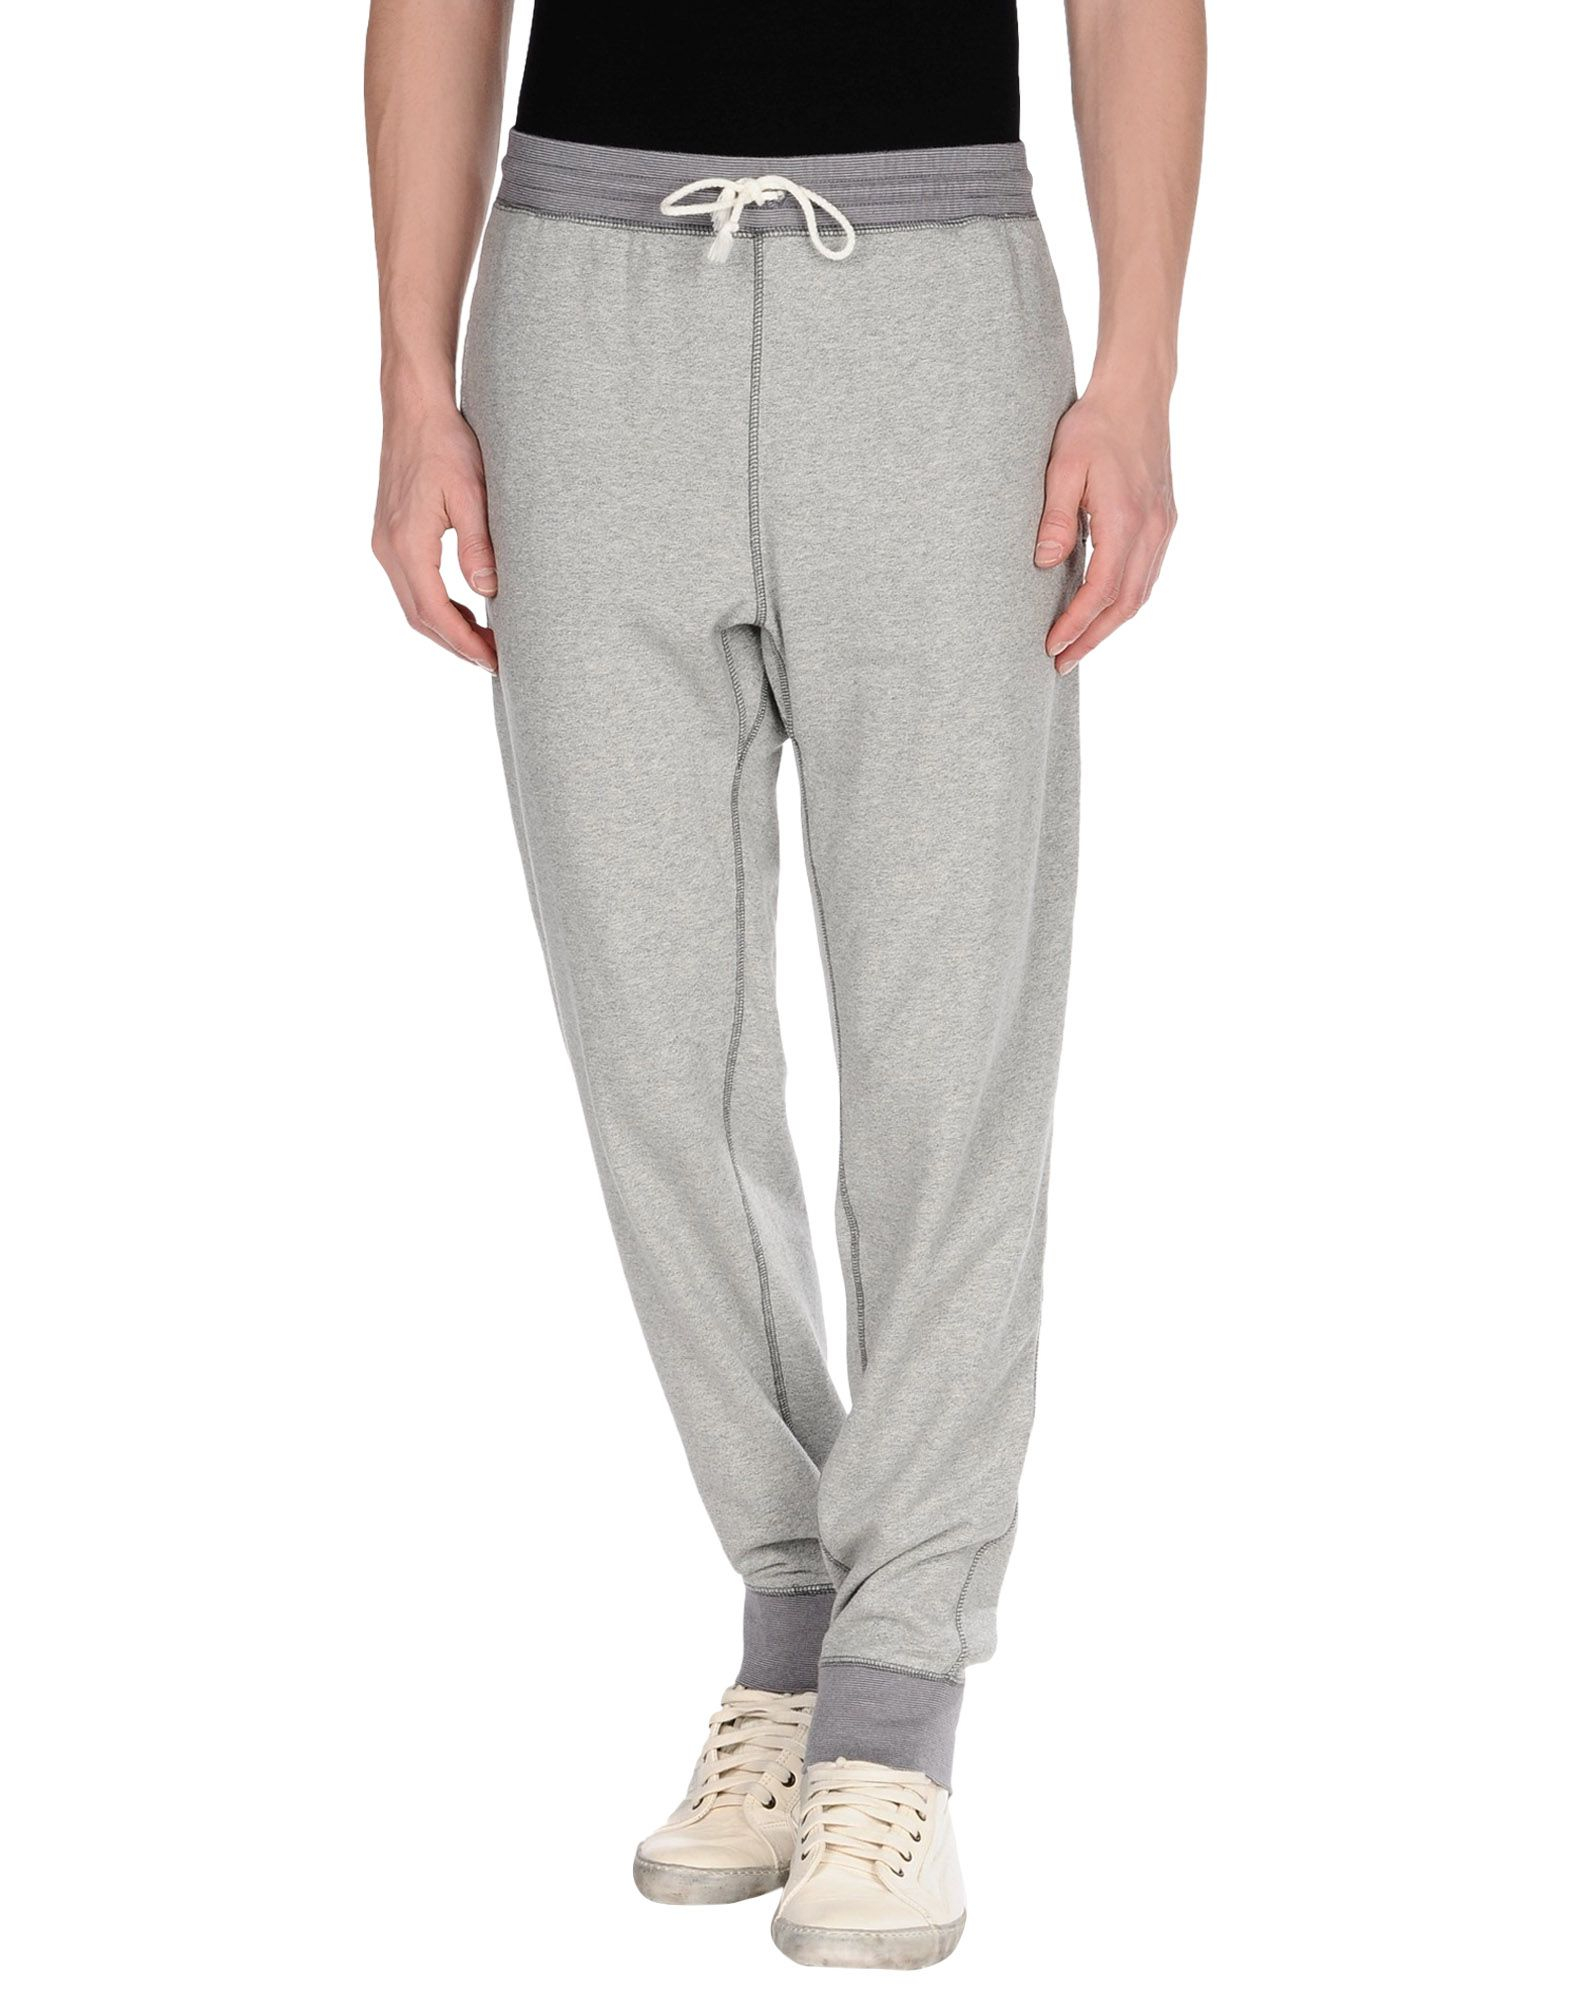 Nike Sweatpants Women Grey With Model Image u2013 playzoa.com